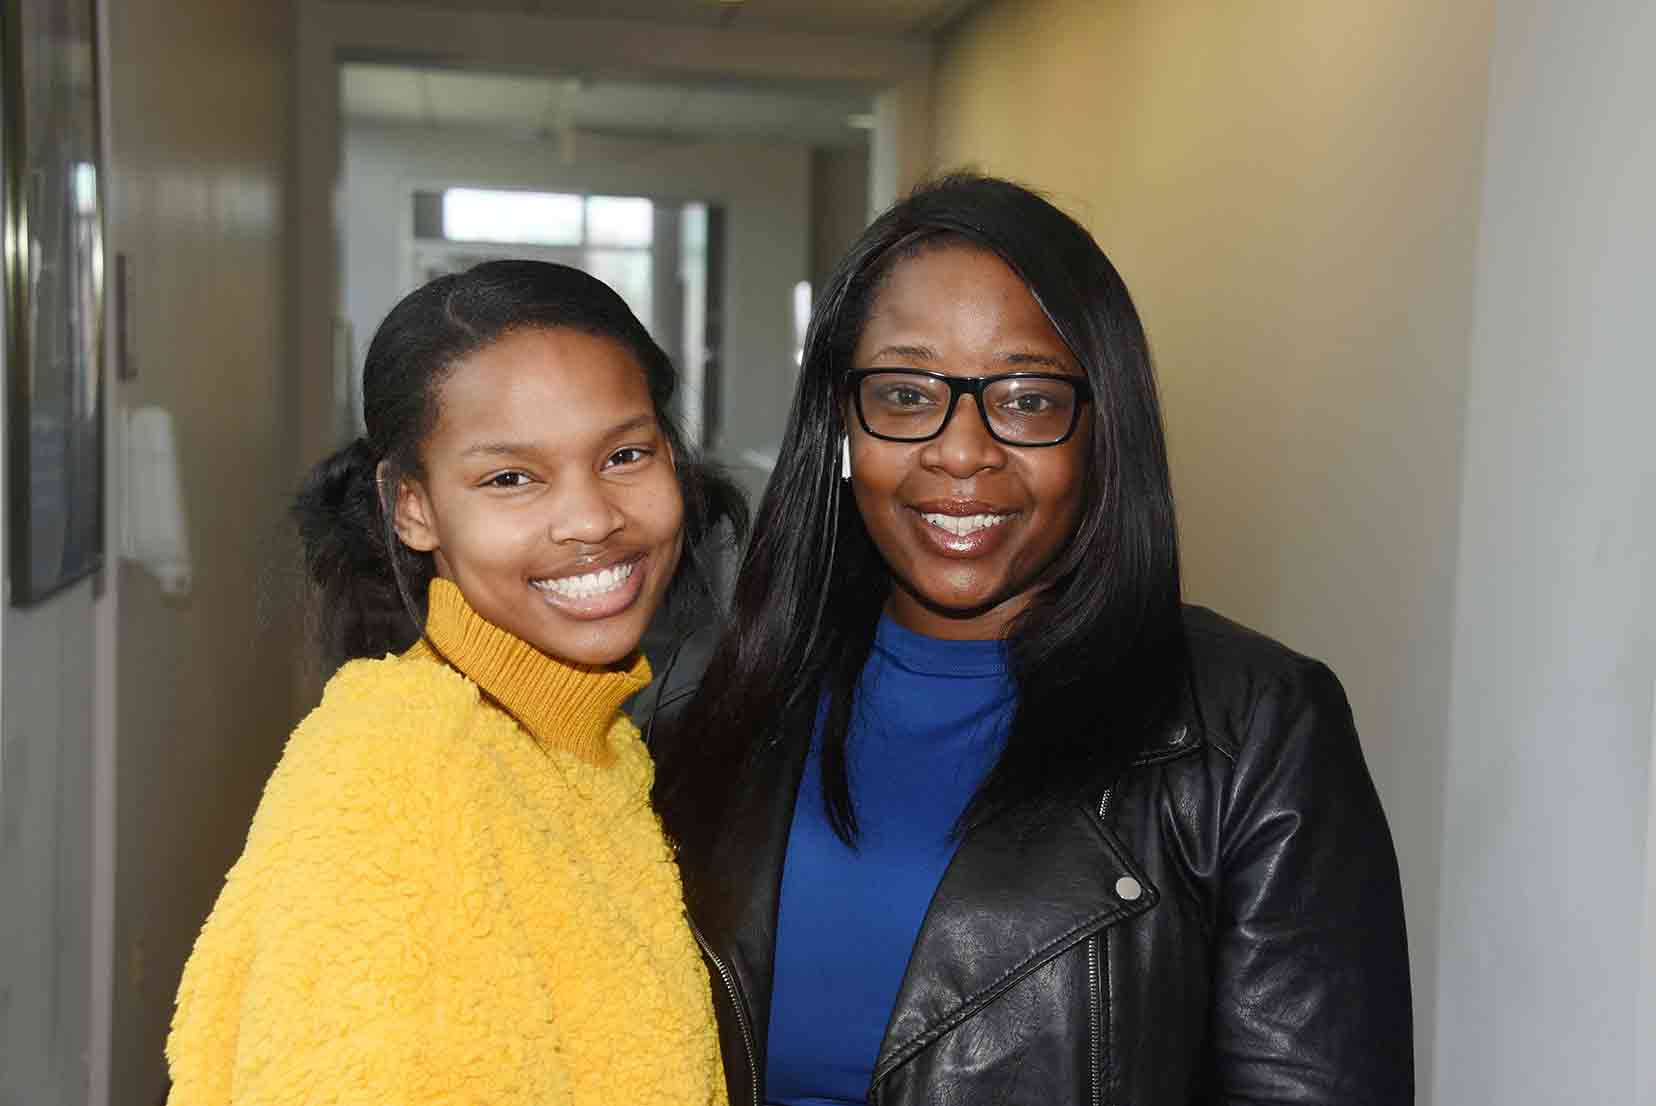 Del State trio competes in a Sickle Cell Disease awareness competition